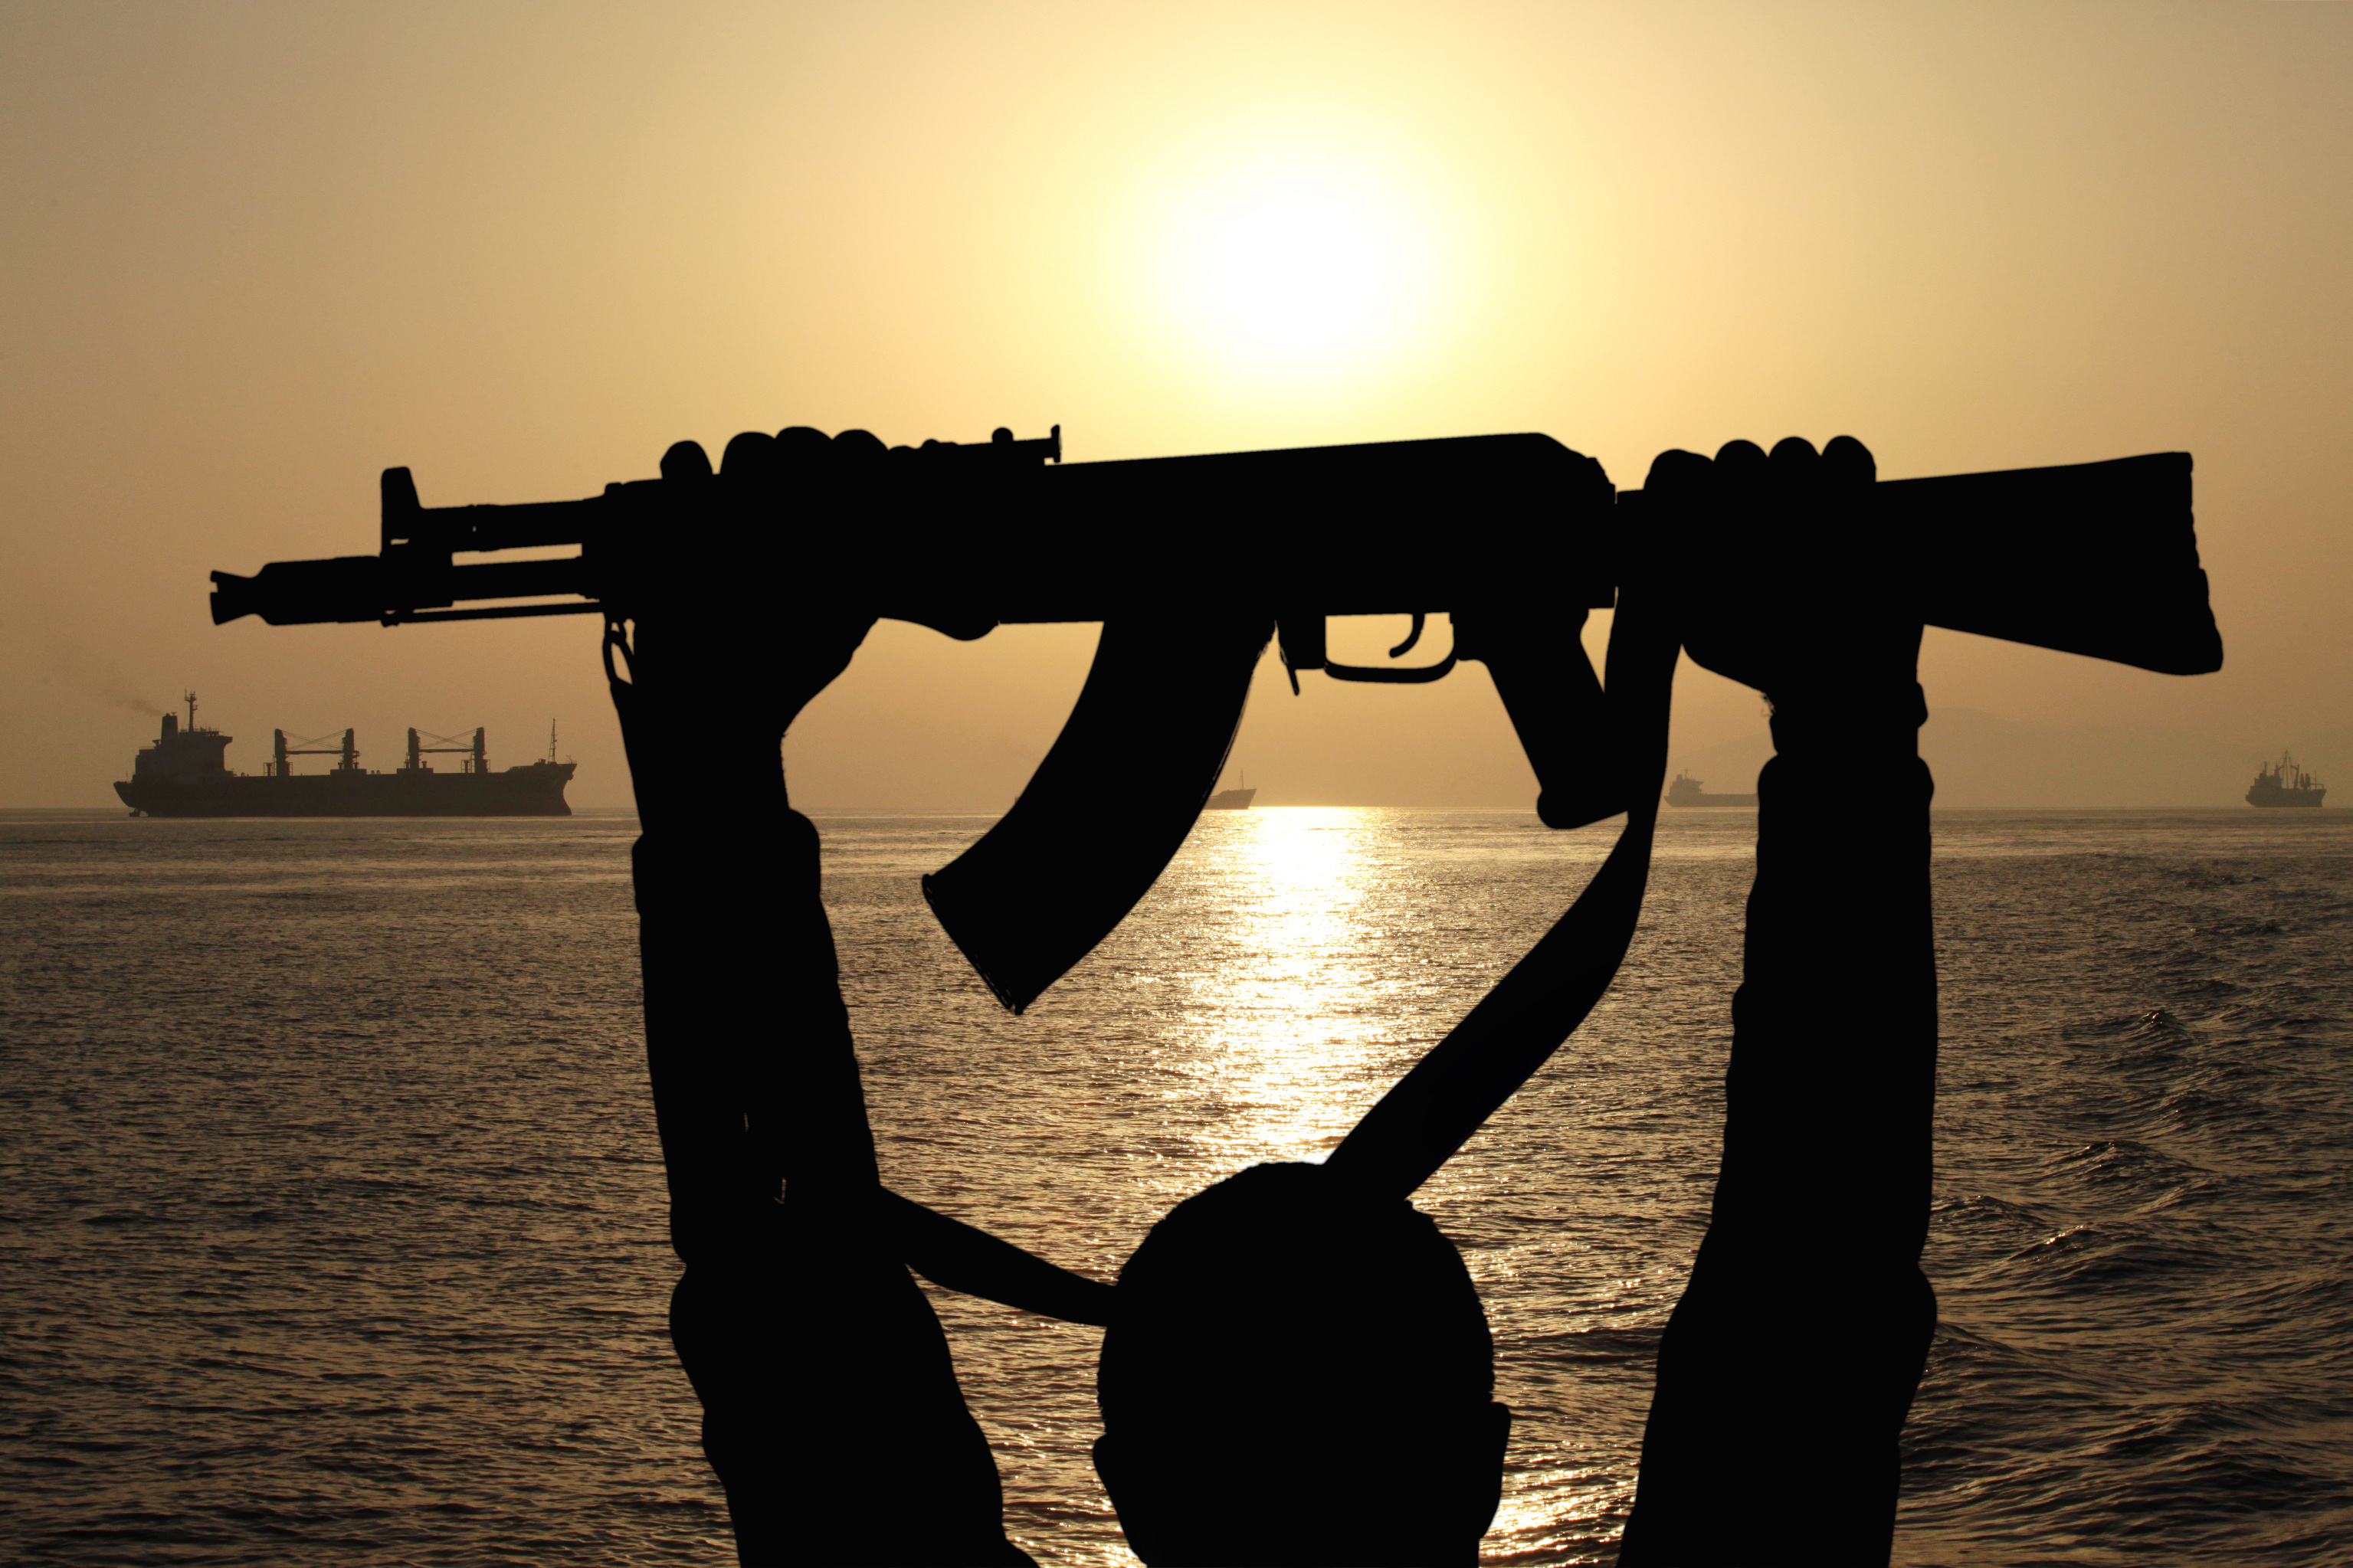 Pirate AK47 with ship in background 2